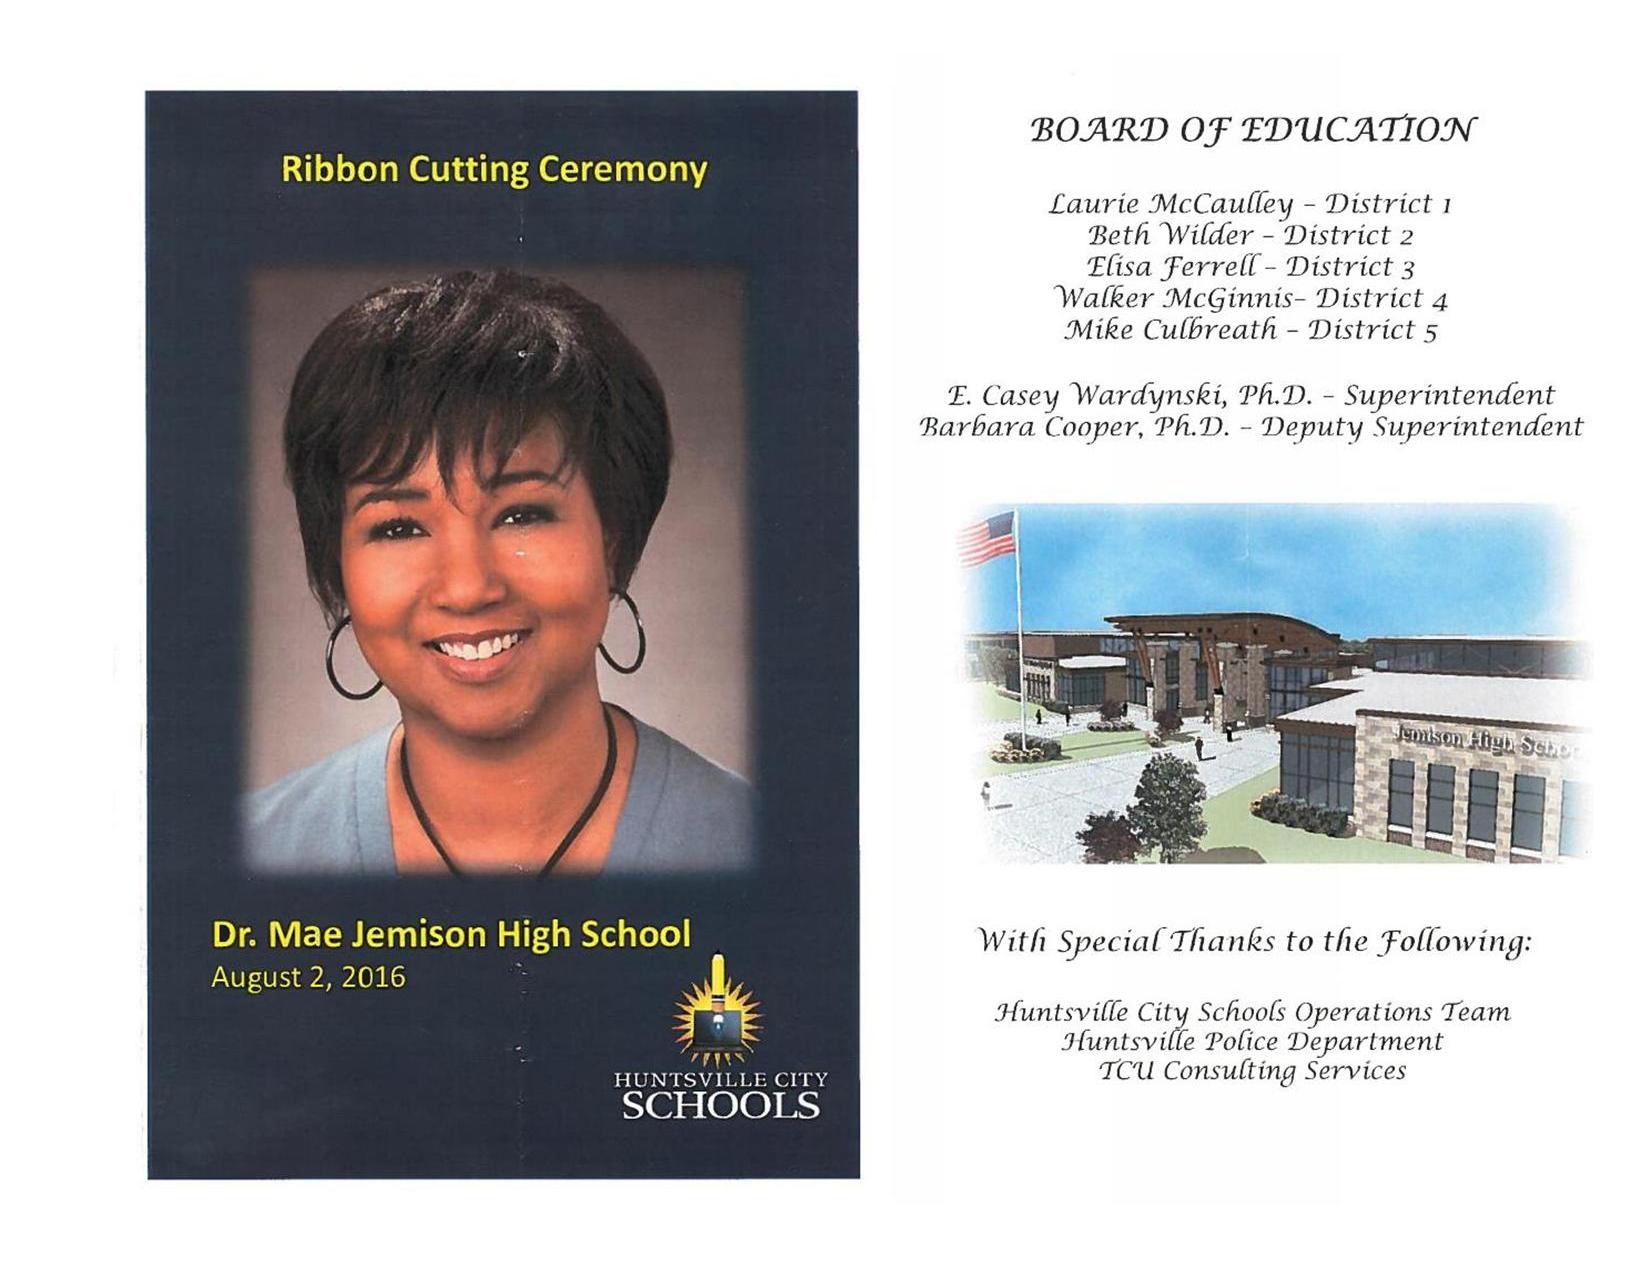 Jemison High School Ribbon Cutting Ceremony 8.2.2016